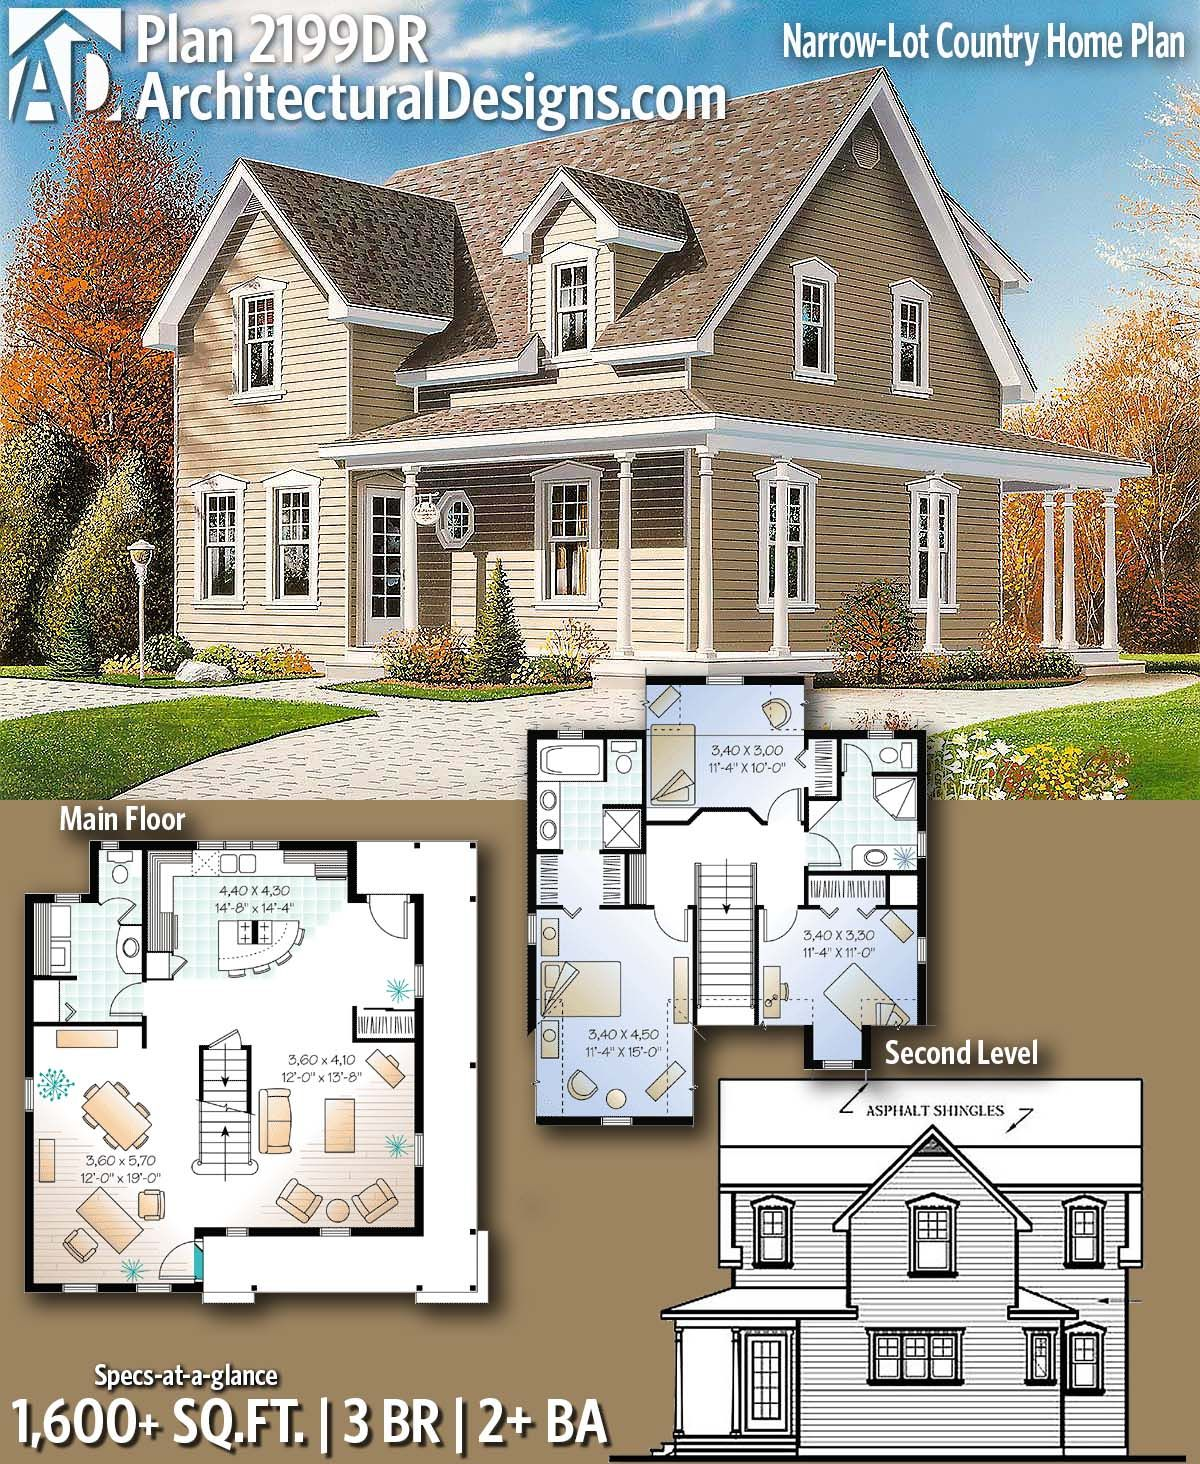 Architectural designs farmhouse home plan dr with bedrooms and baths in sq also pin by drummond house plans on small  affordable rh pinterest